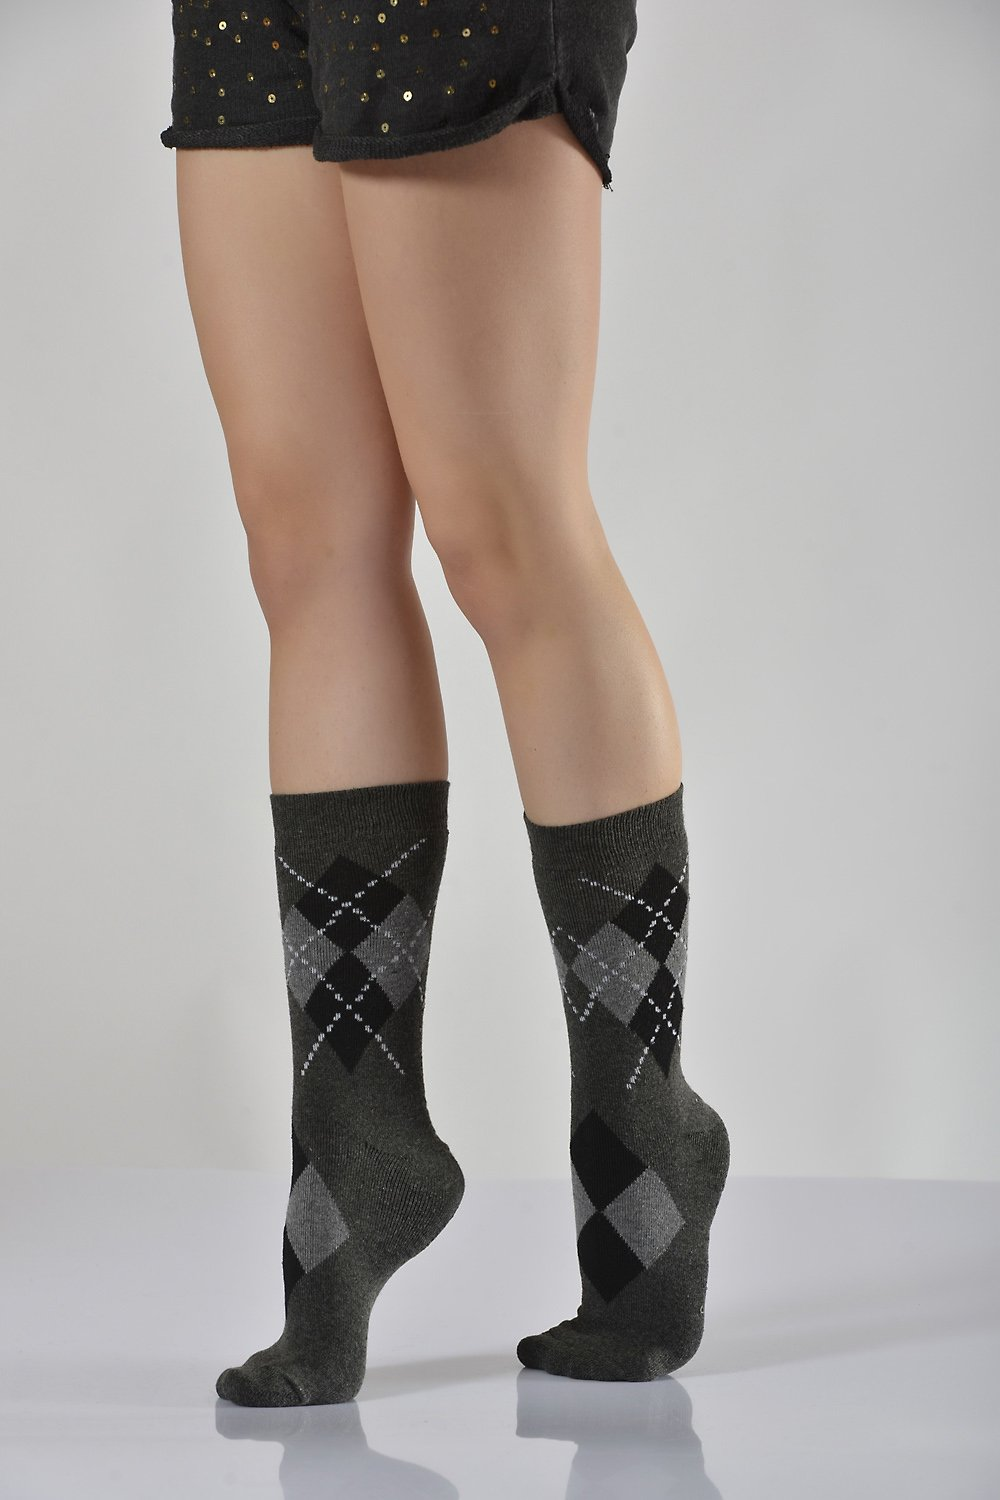 Women's Plaid Grey Socket Socks- 3 Pairs